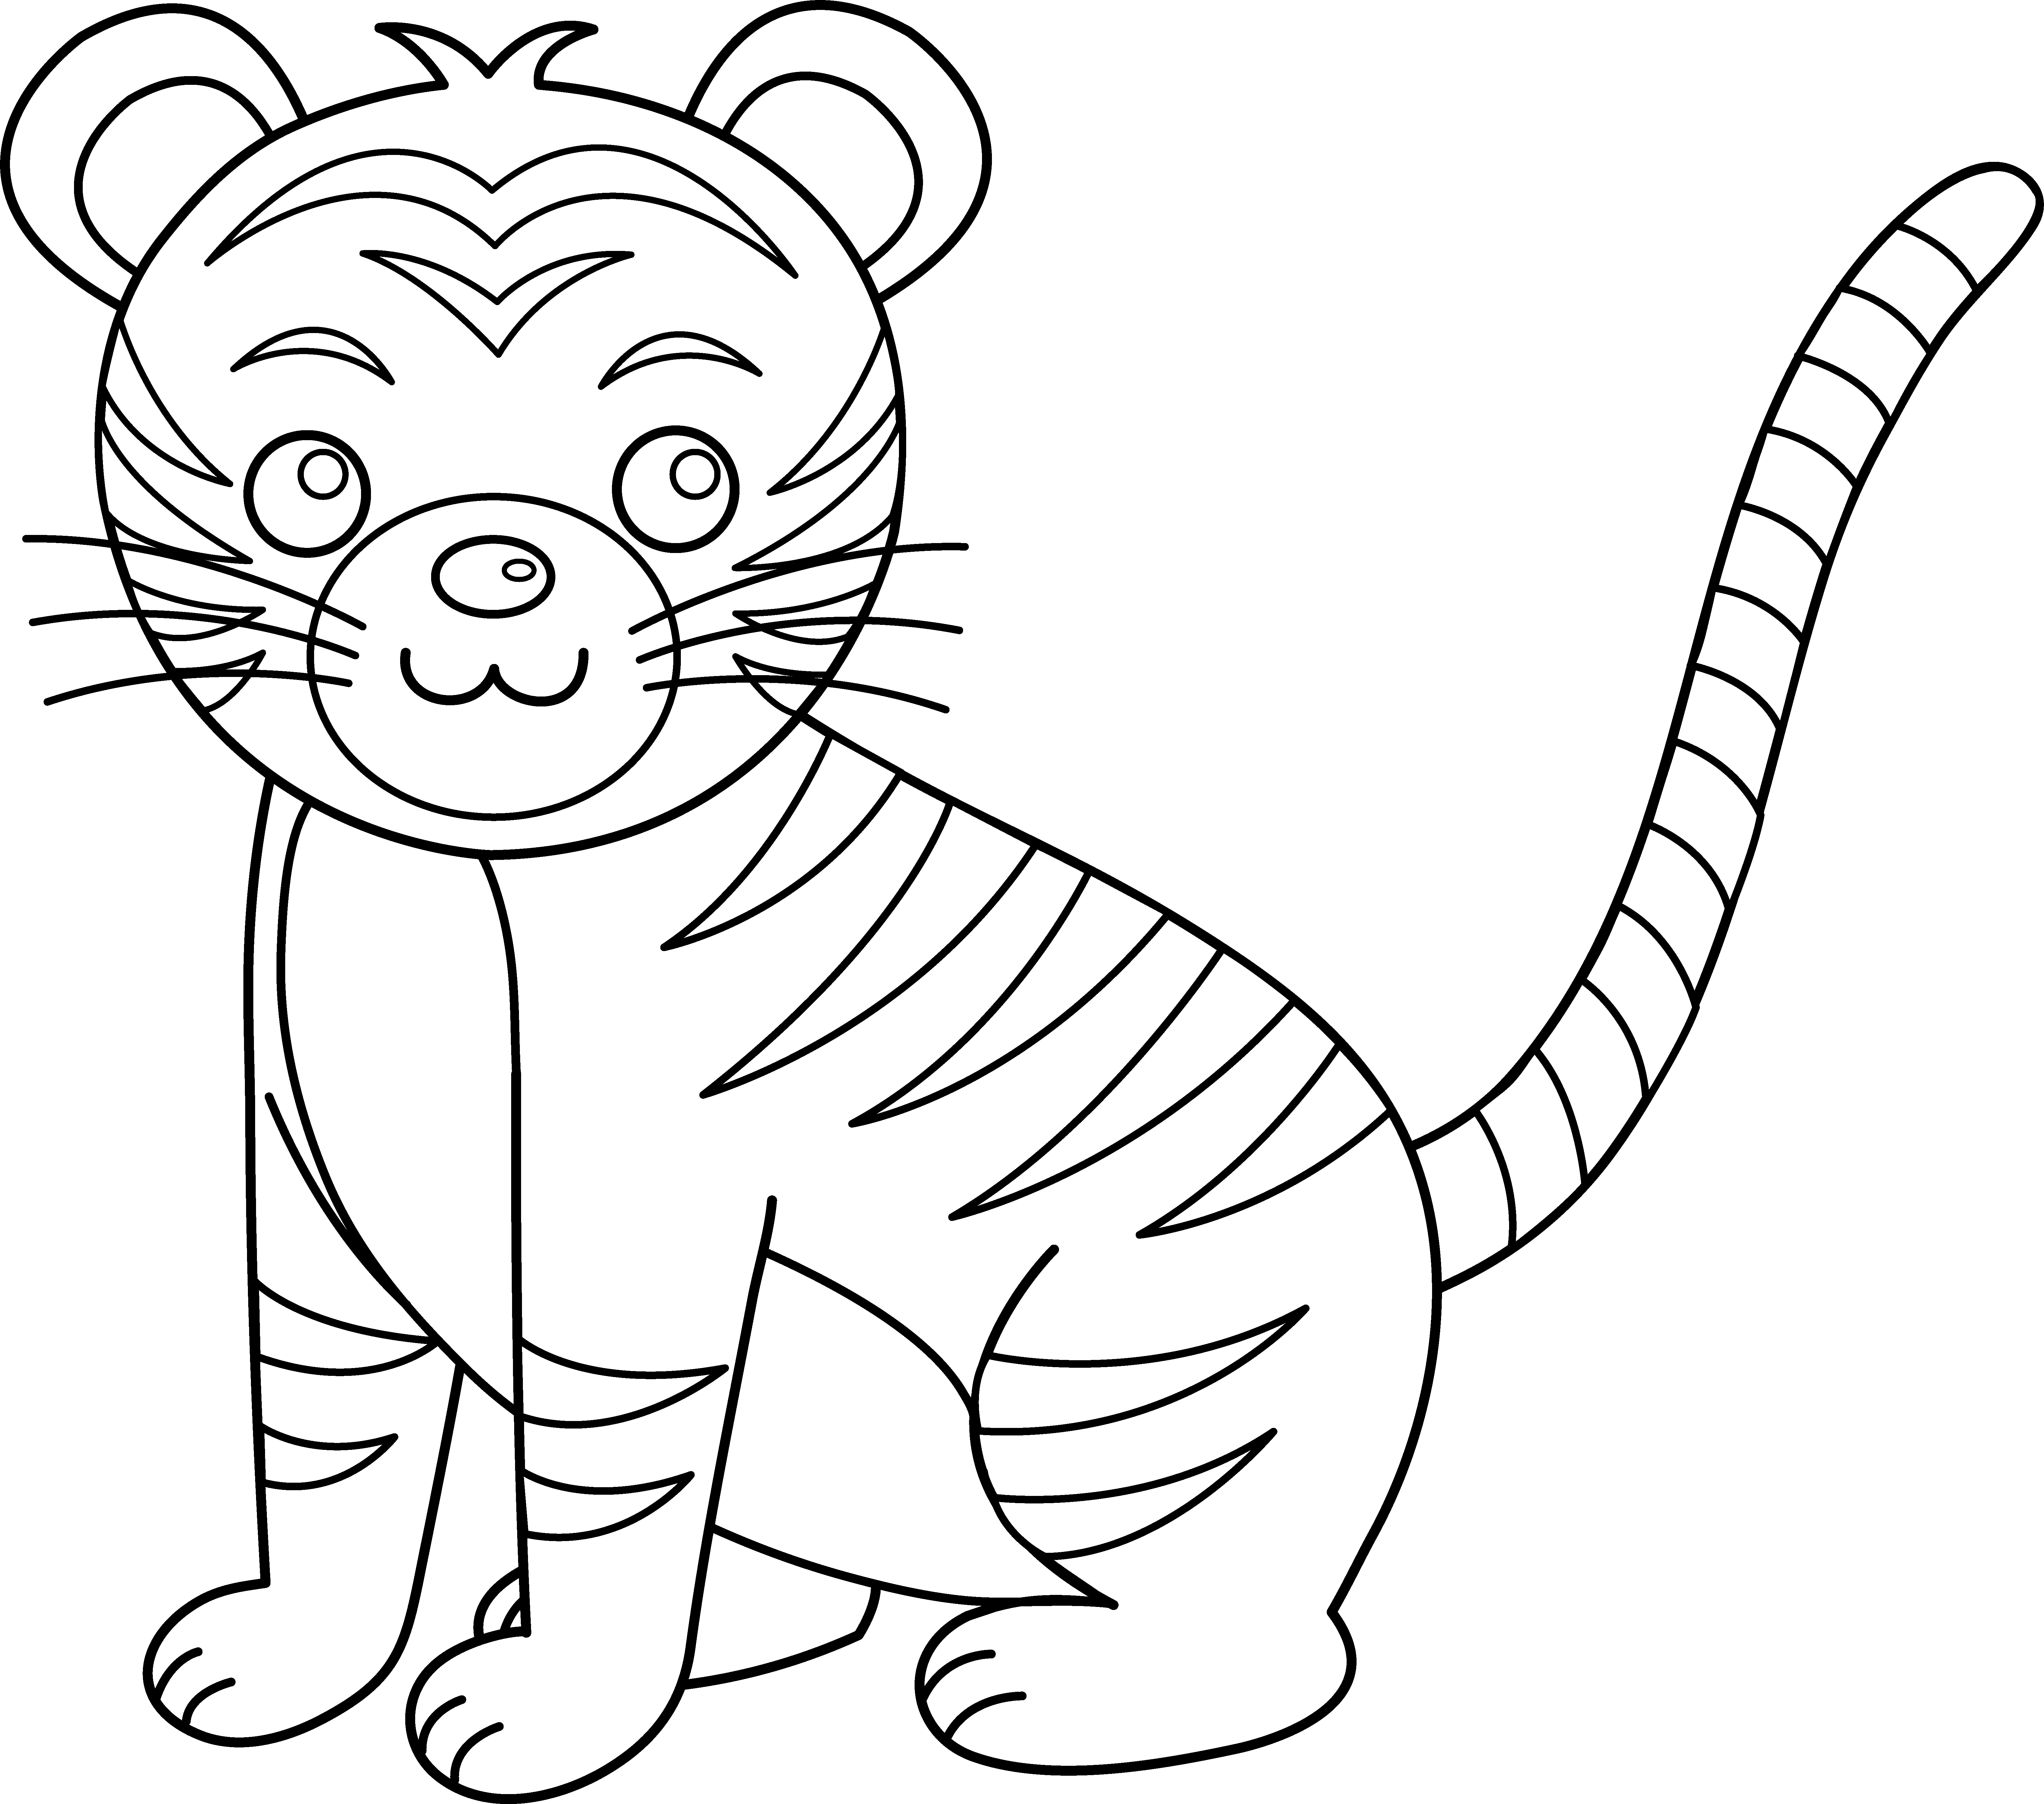 Go Sign Clipart Black And White Clipart Panda